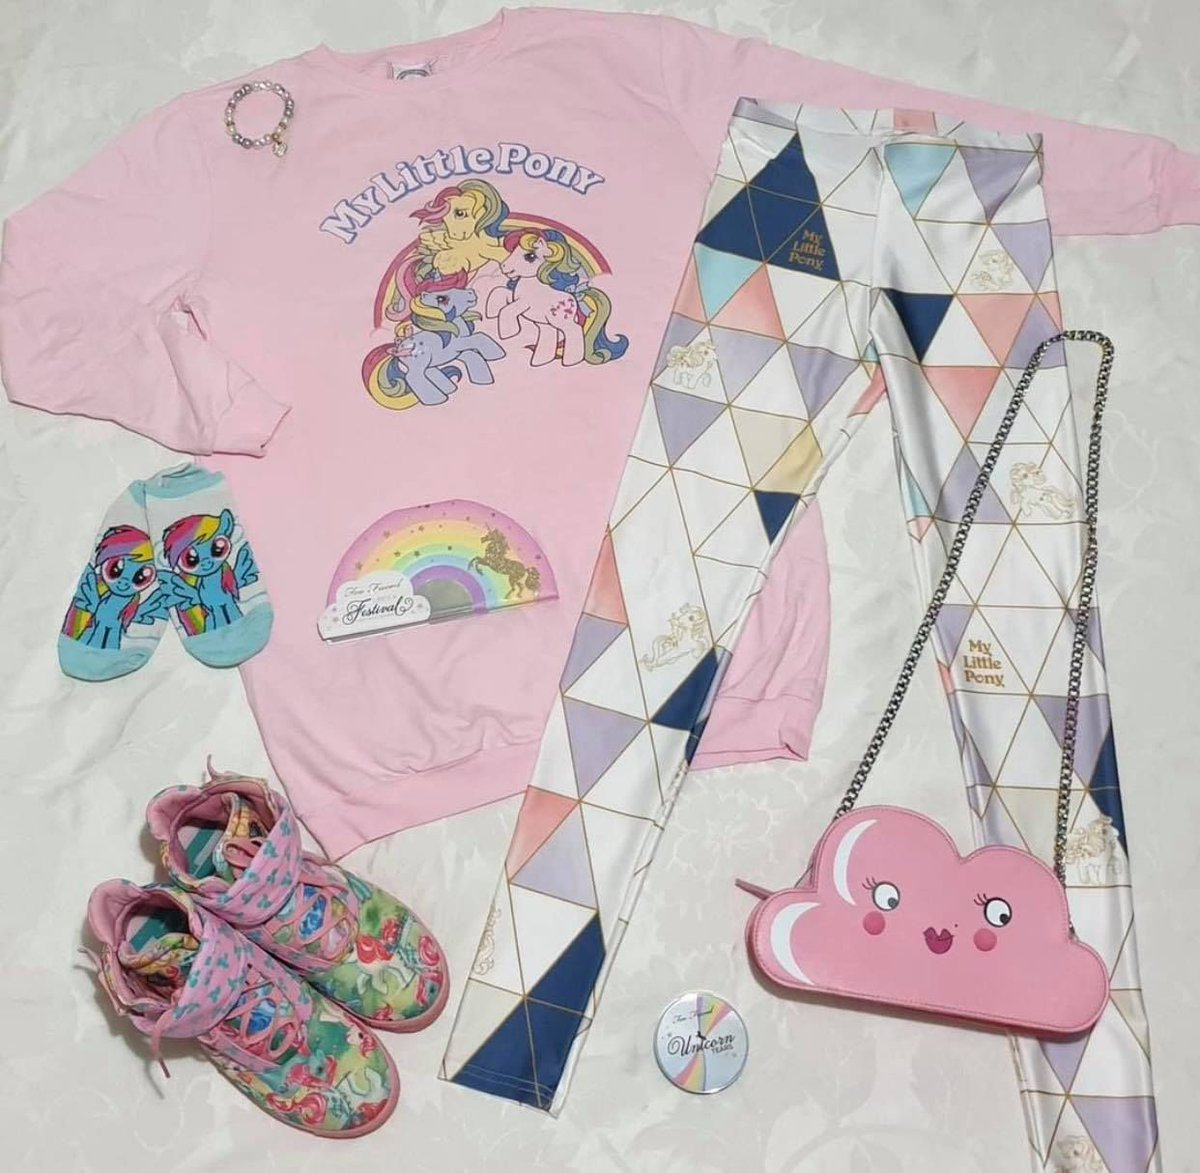 Ohhh kawaii lookbook crush right here! @rainbowtravelfairy teams up her amazing pastel pretties with our brand new officially licensed My Little Pony winter collection leggings for this super-sweet styleboard... #mylittlepony #sweet #kawaii #leggings #toasty #winter #warm #cute